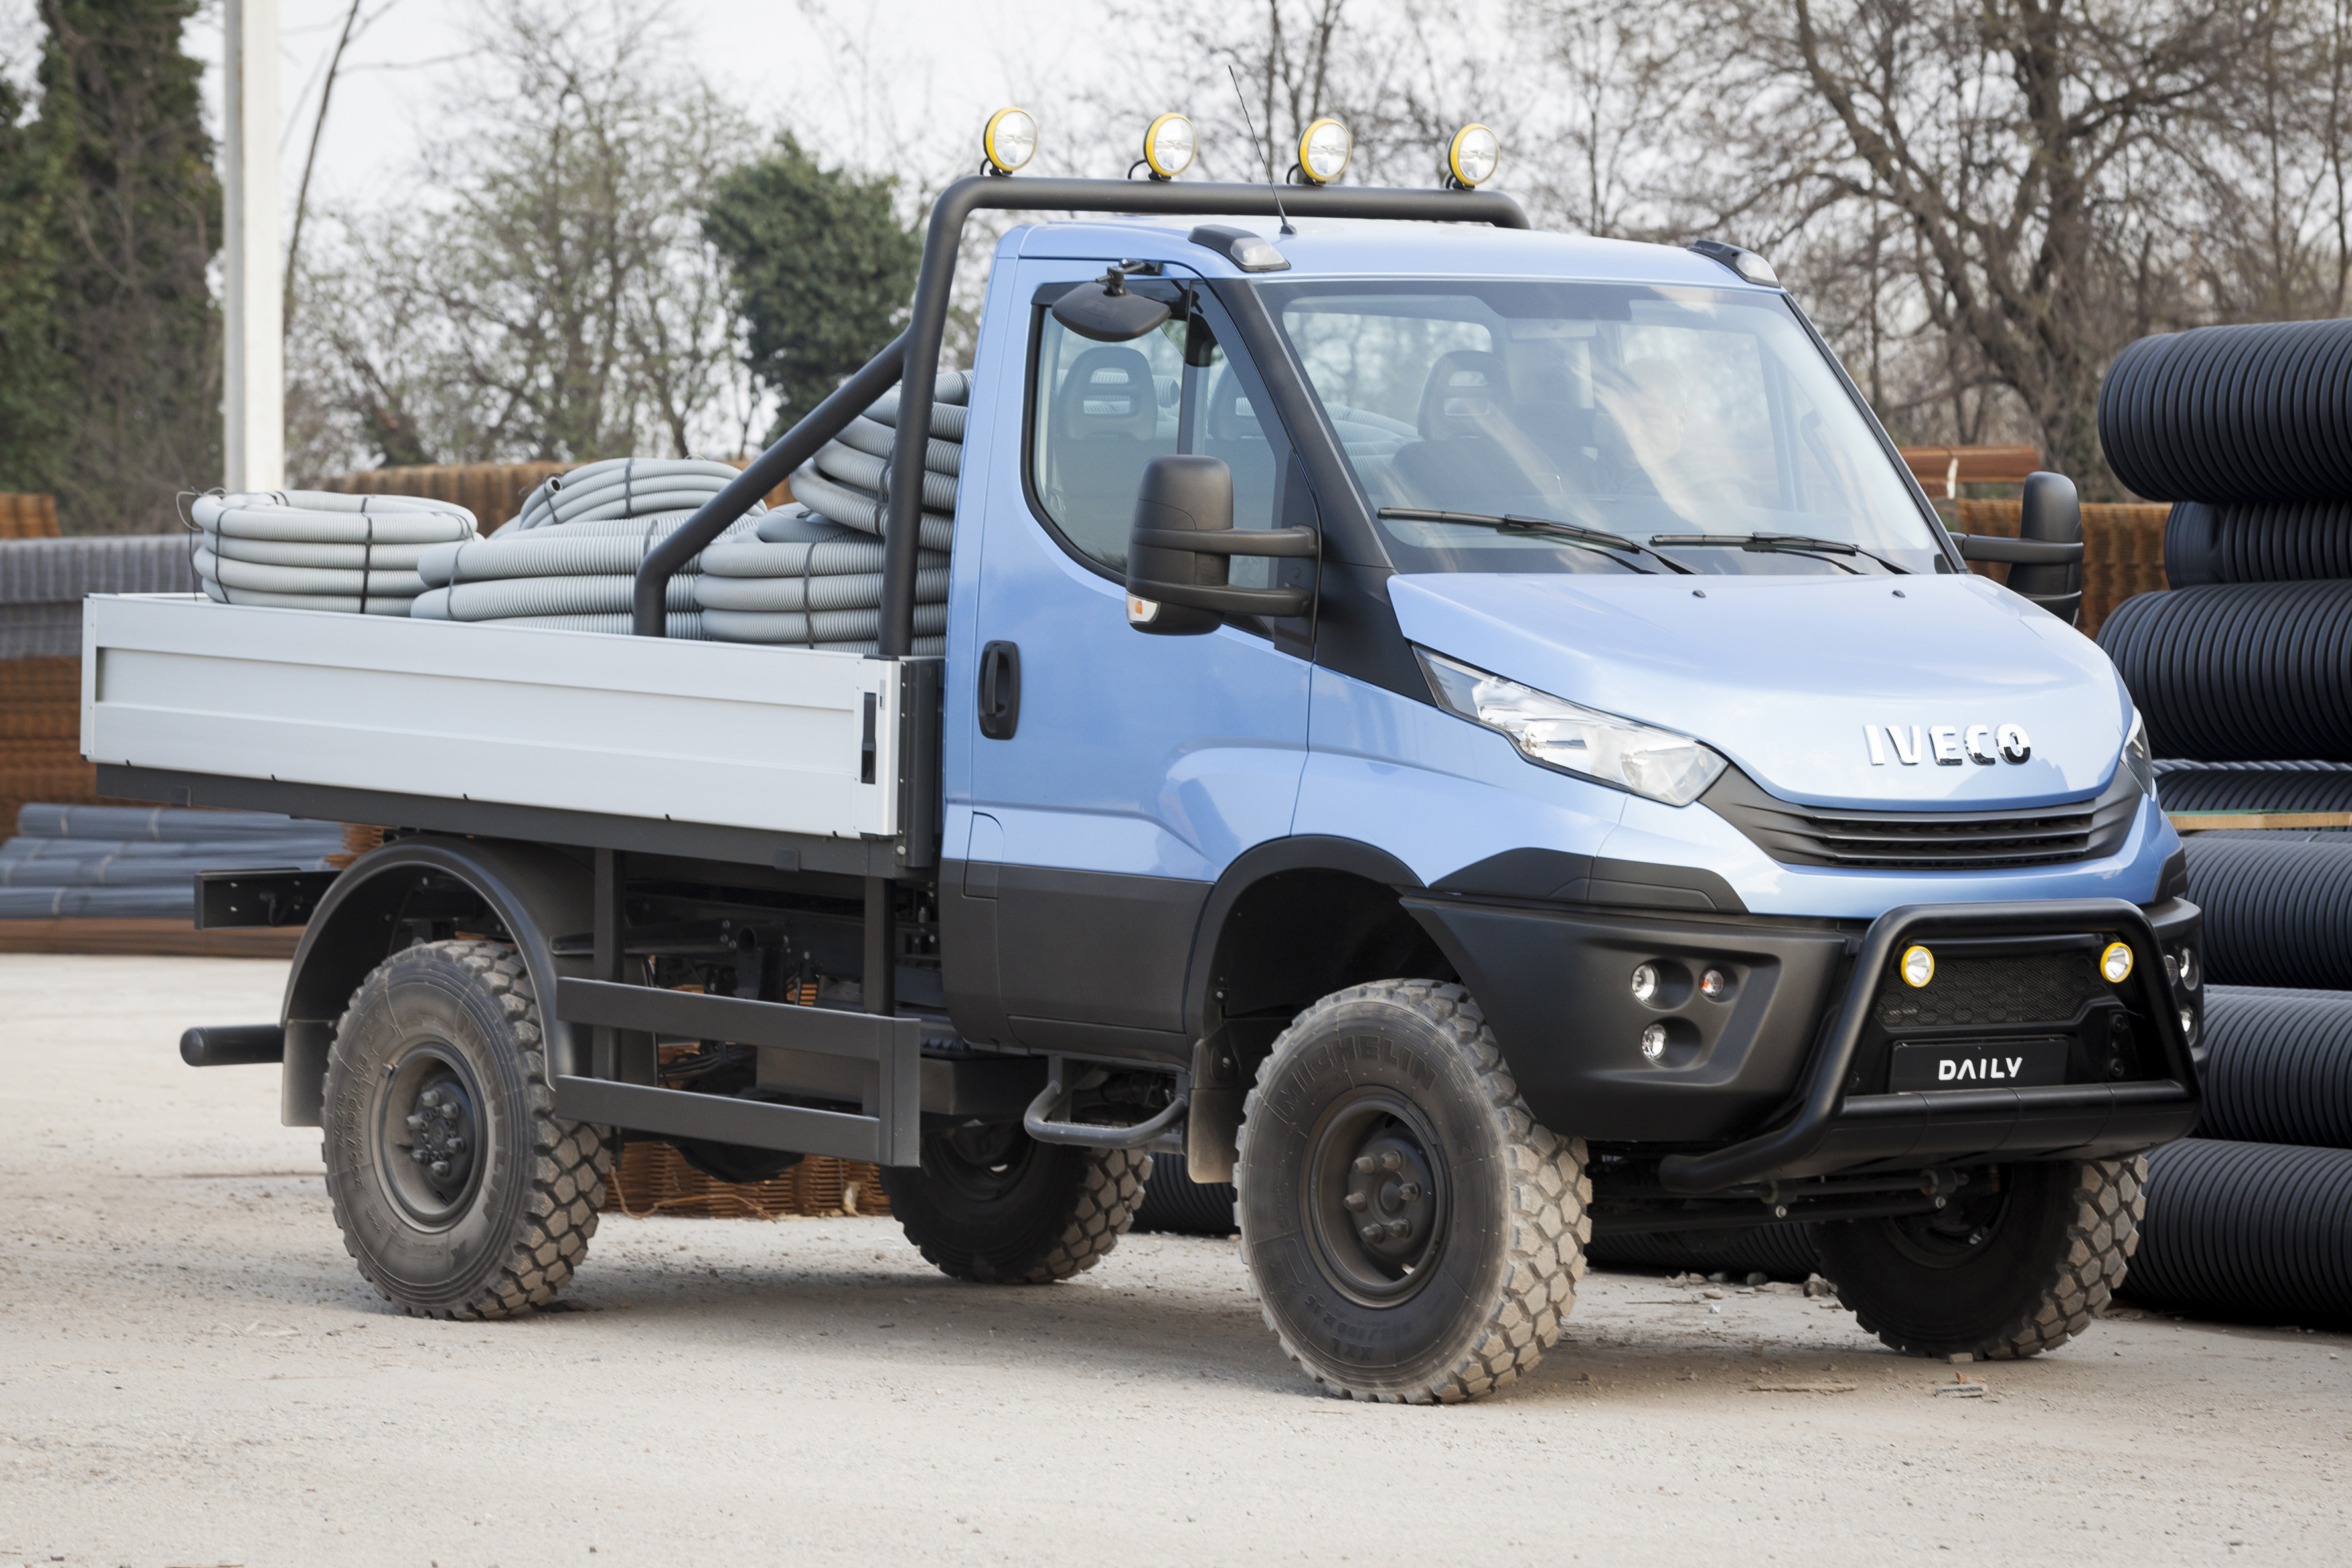 New Daily E6 4x4 leads full range Iveco line-up at Tip-Ex